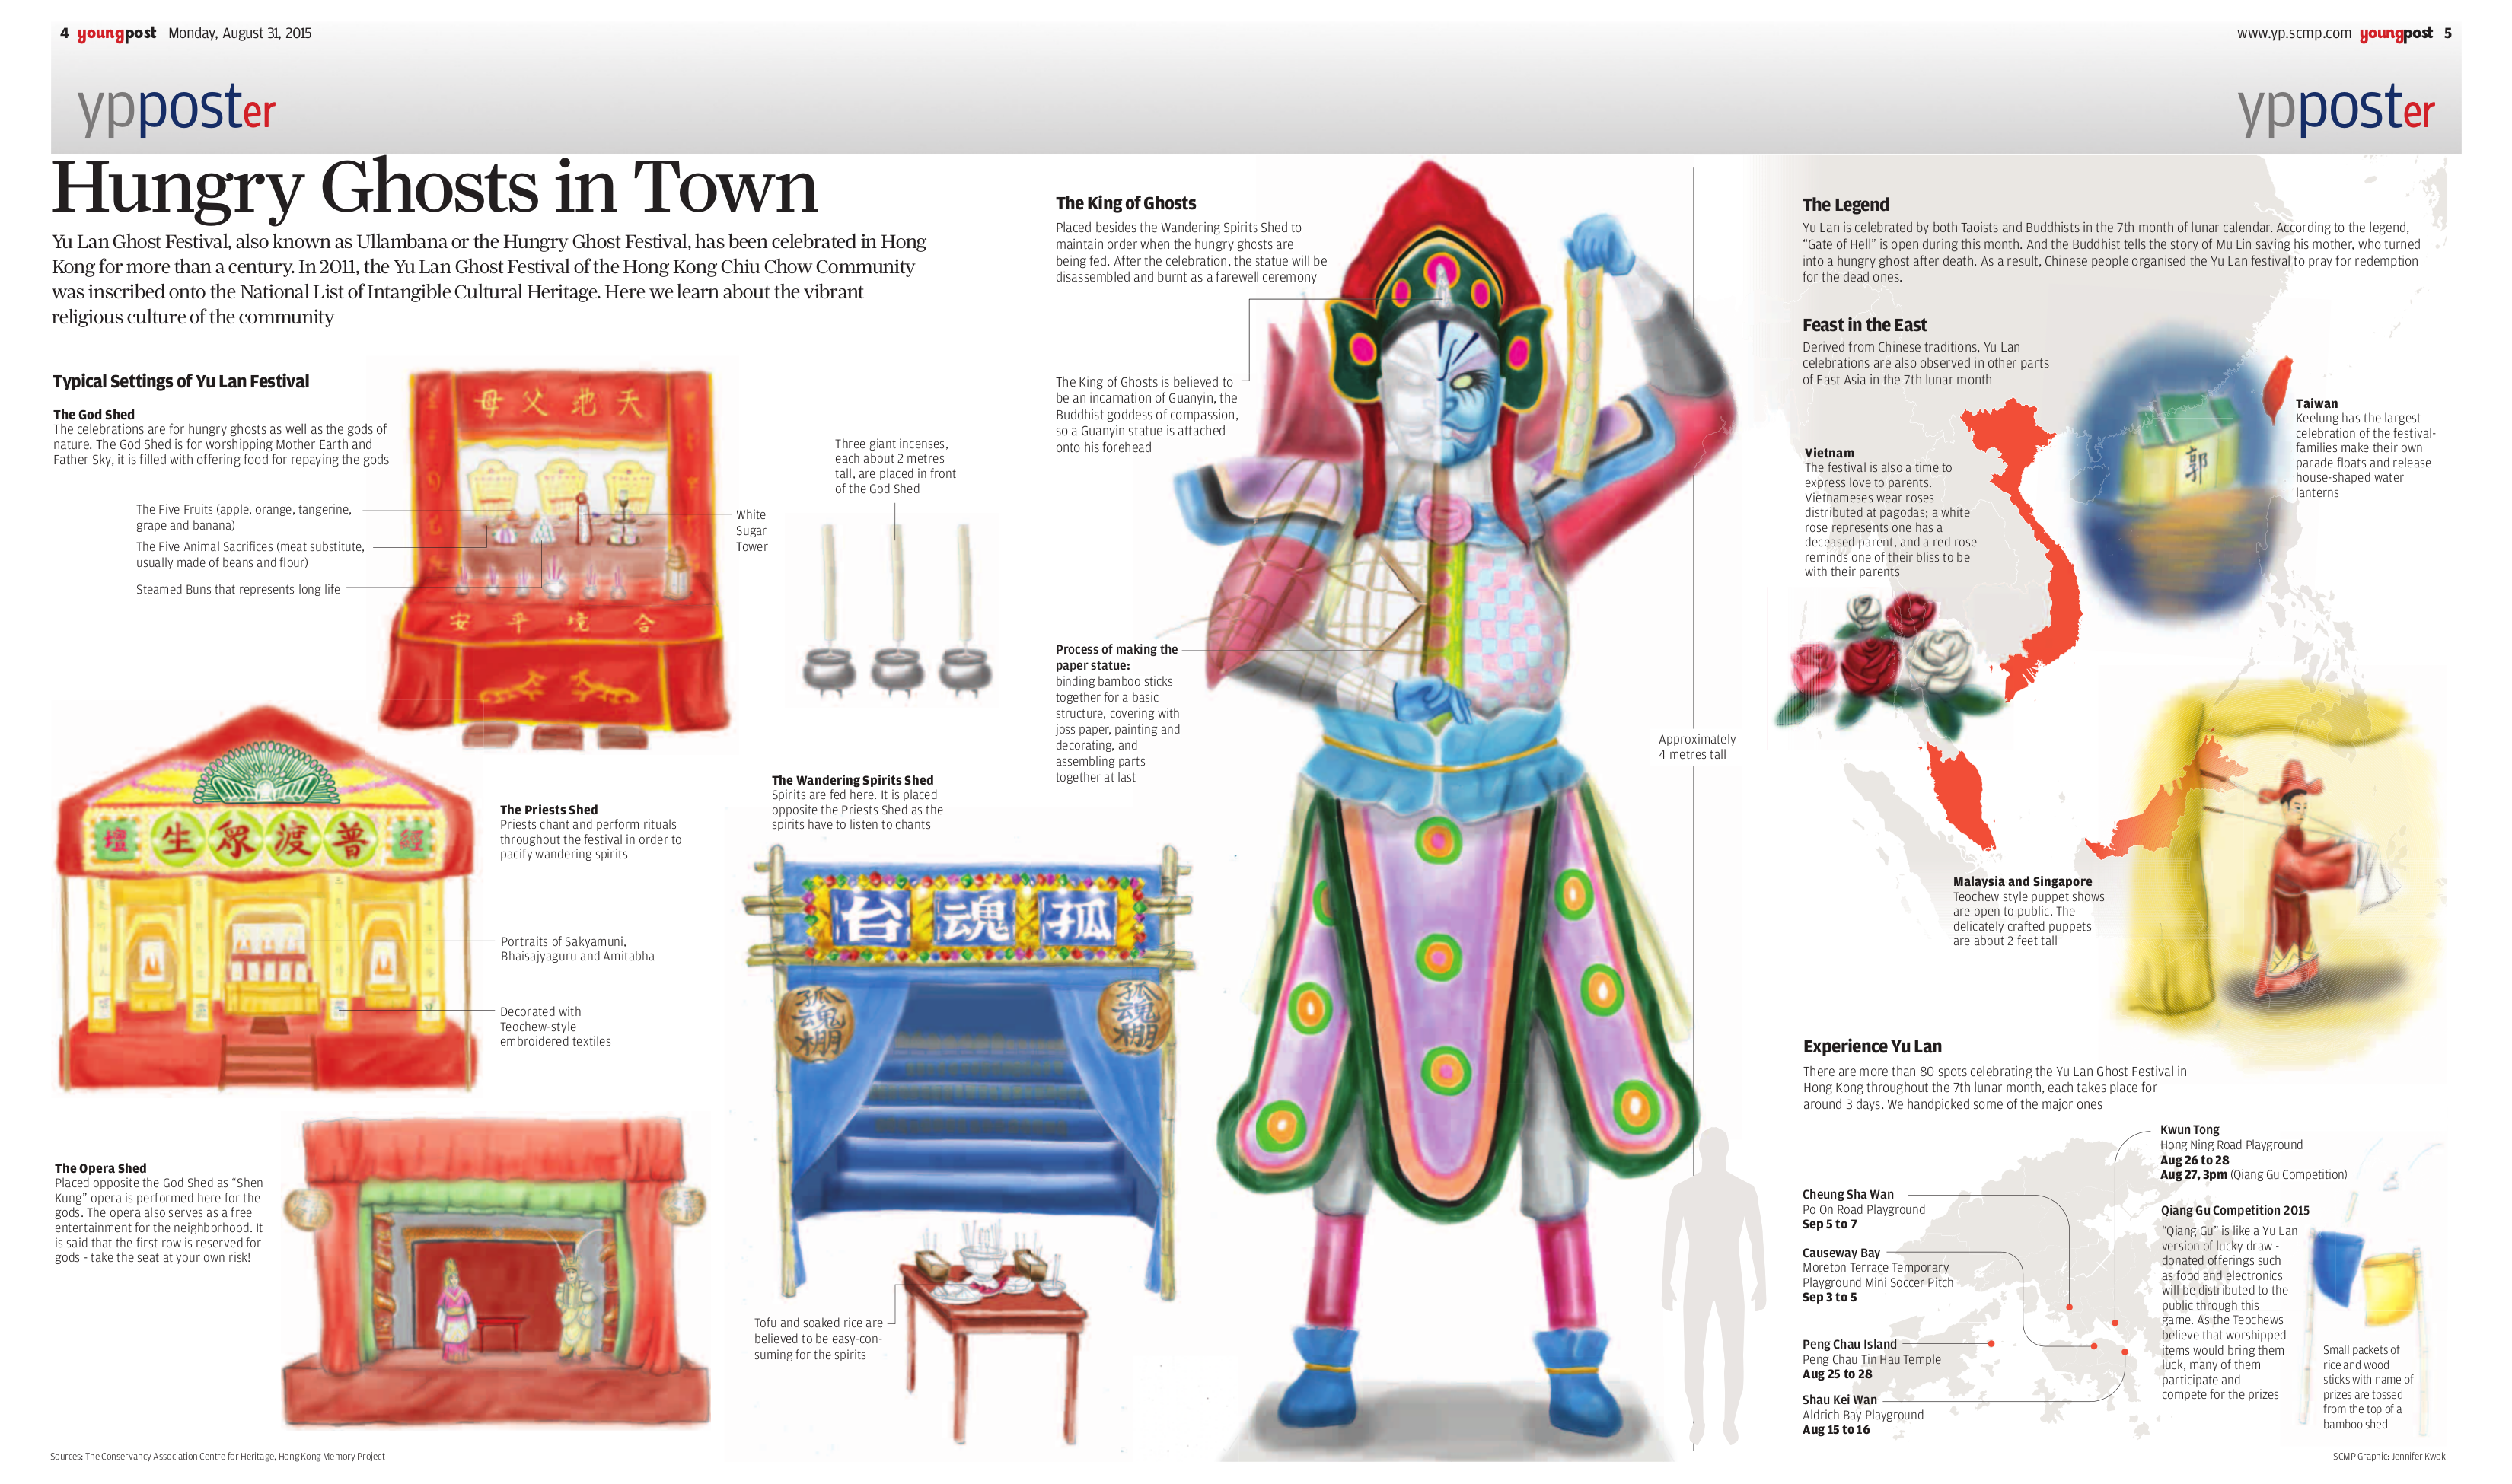 INFOGRAPHIC: Hungry Ghosts in Town | South China Morning Post